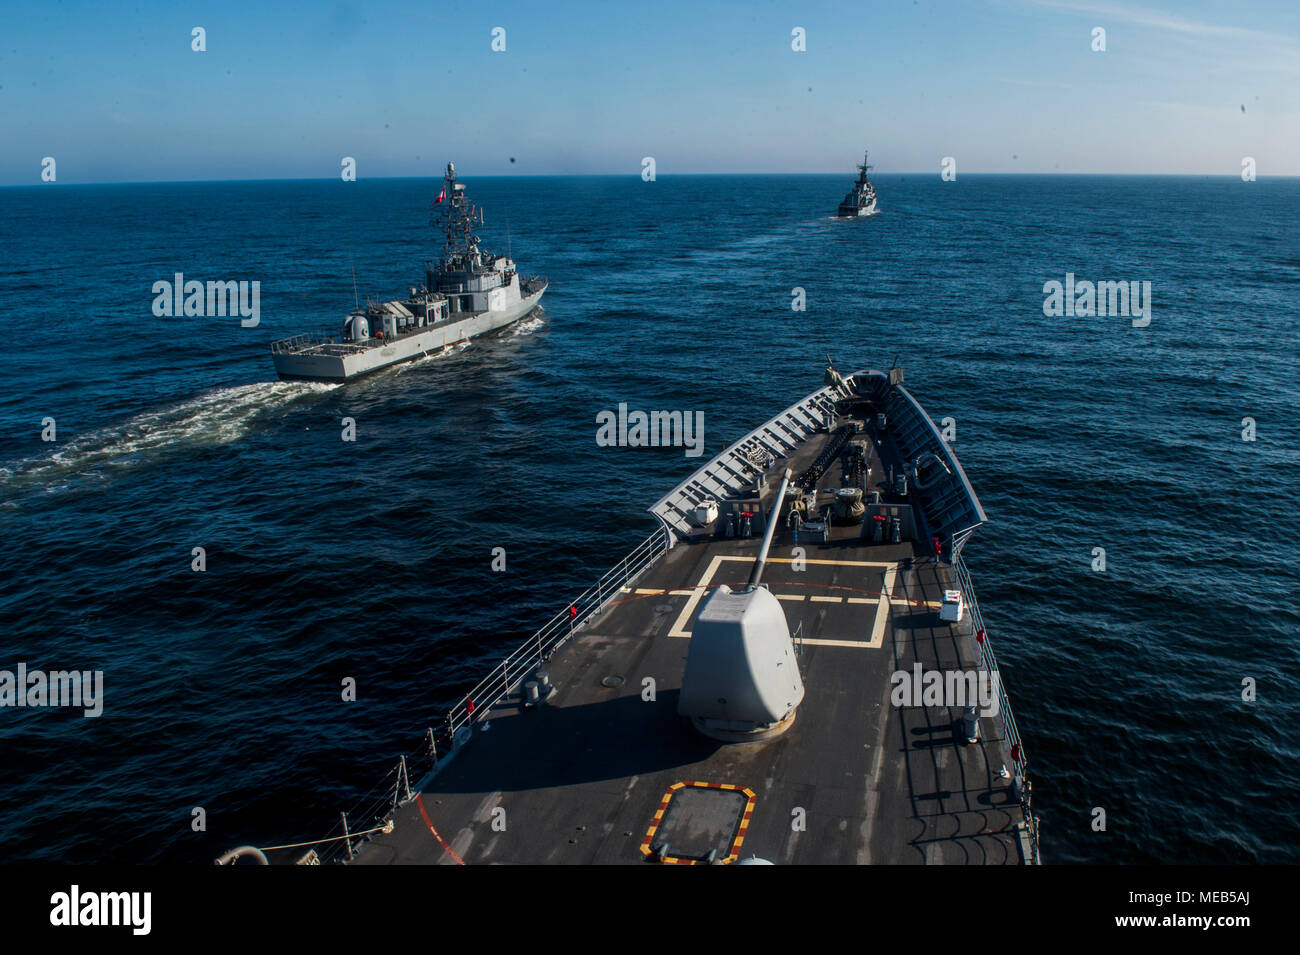 180419-N-CO914-0141  PACIFIC OCEAN (Apr 19, 2018) The Ticonderoga-class guided-missile cruiser USS Lake Champlain (CG 57) prepares to come alongside Peruvian corvette BAP Santillana (CM 22) and Peruvian frigate BAP Quiñones (FM 58) during a leapfrog exercise. Lake Champlain is participating in Silent Forces Exercise (SIFOREX) 2018 with the Peruvian and Colombian Navies. (U.S. Navy photo by Mass Communication Specialist 1st Class Nathan Carpenter/Released) Stock Photo